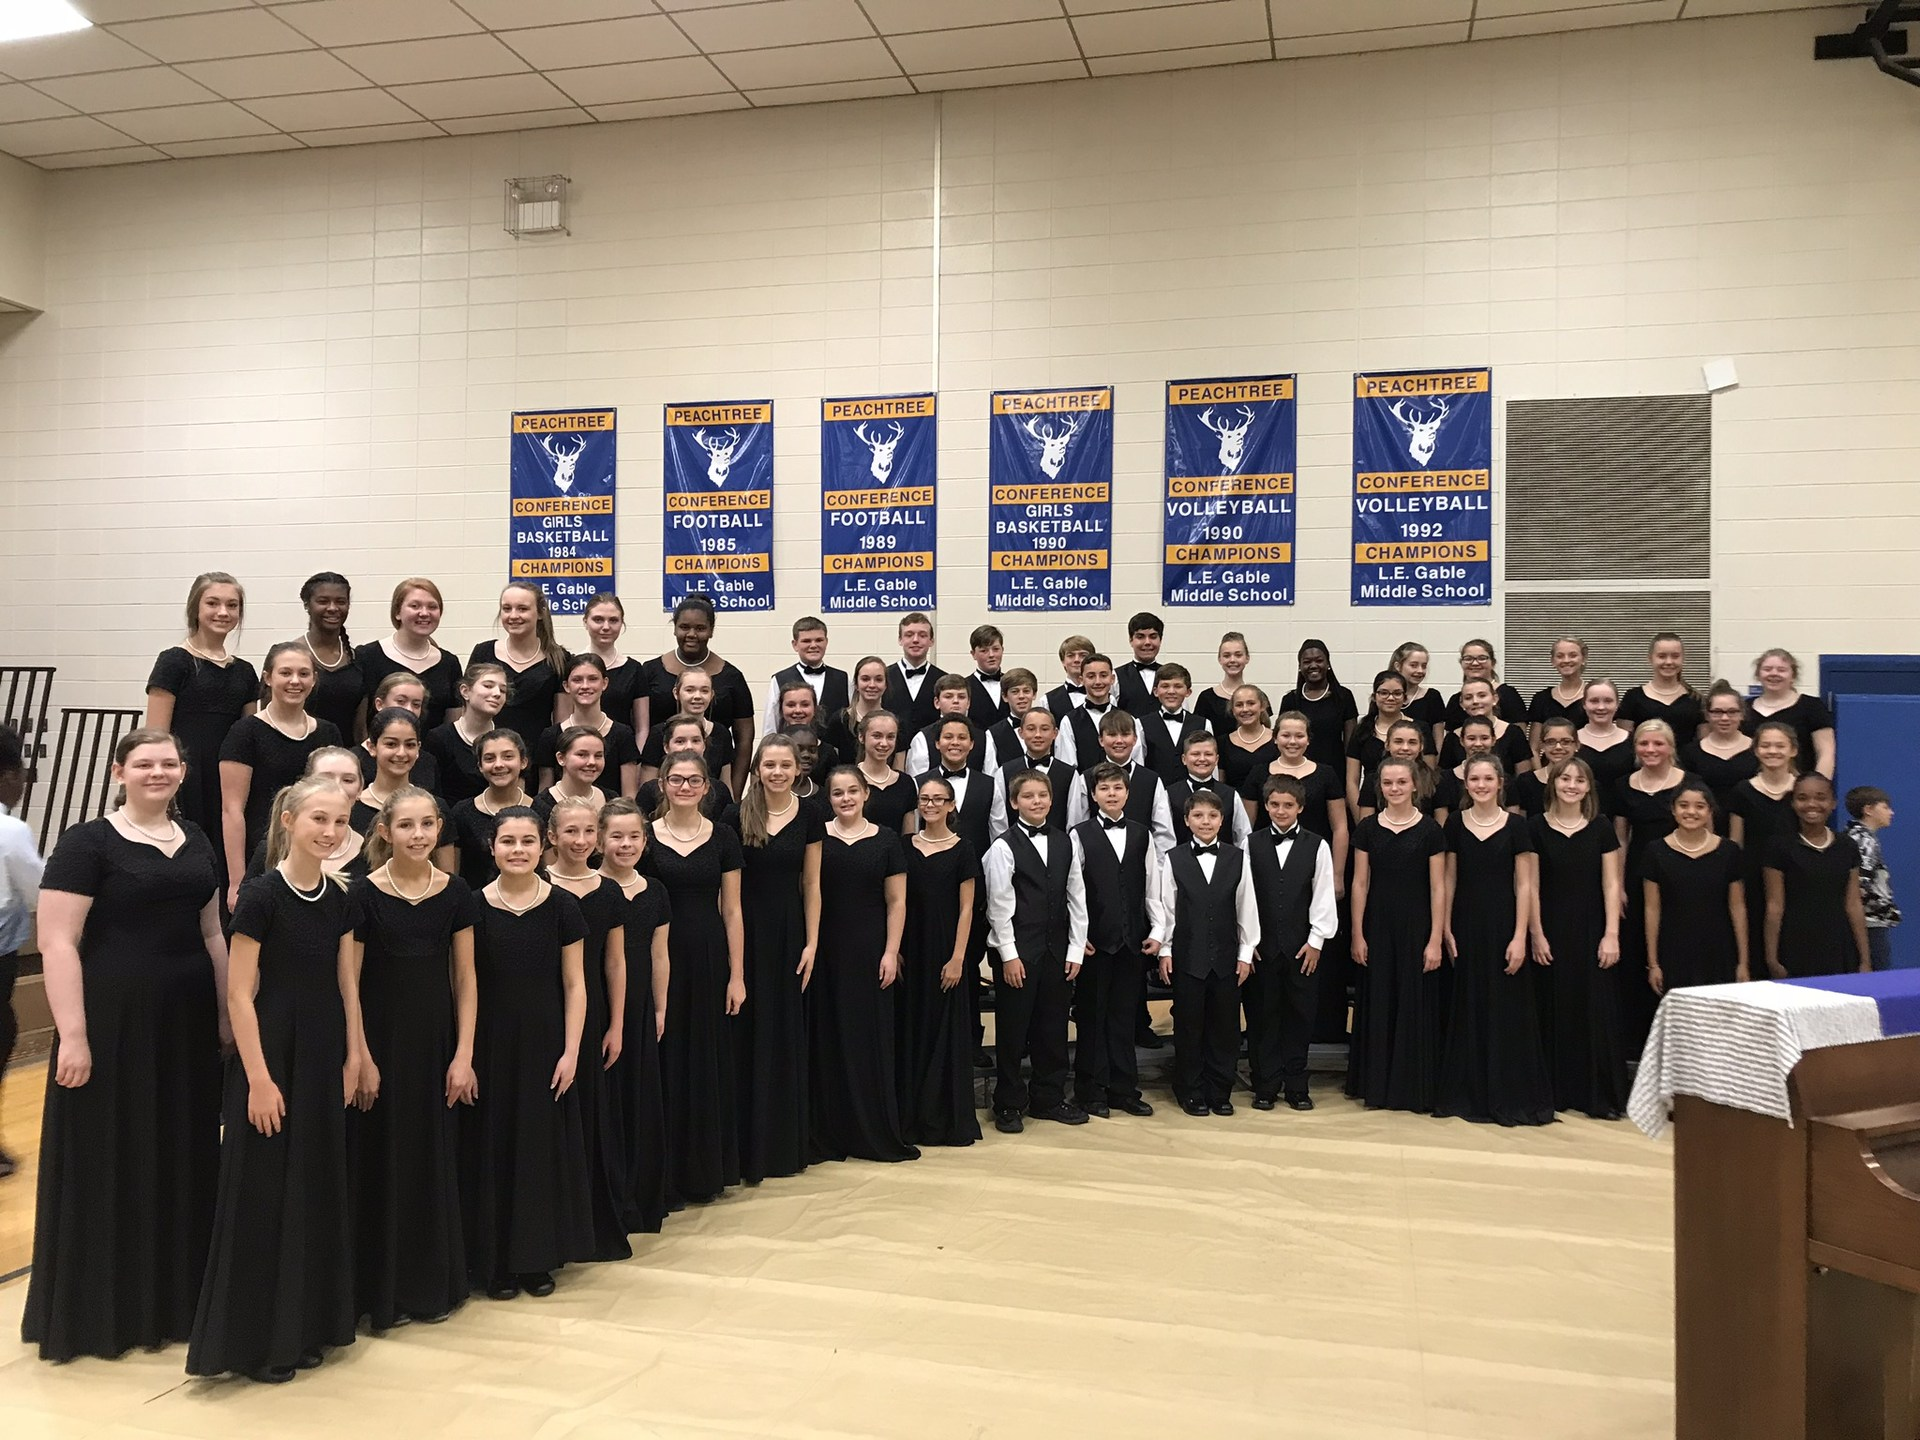 Gable Middle School Chorus